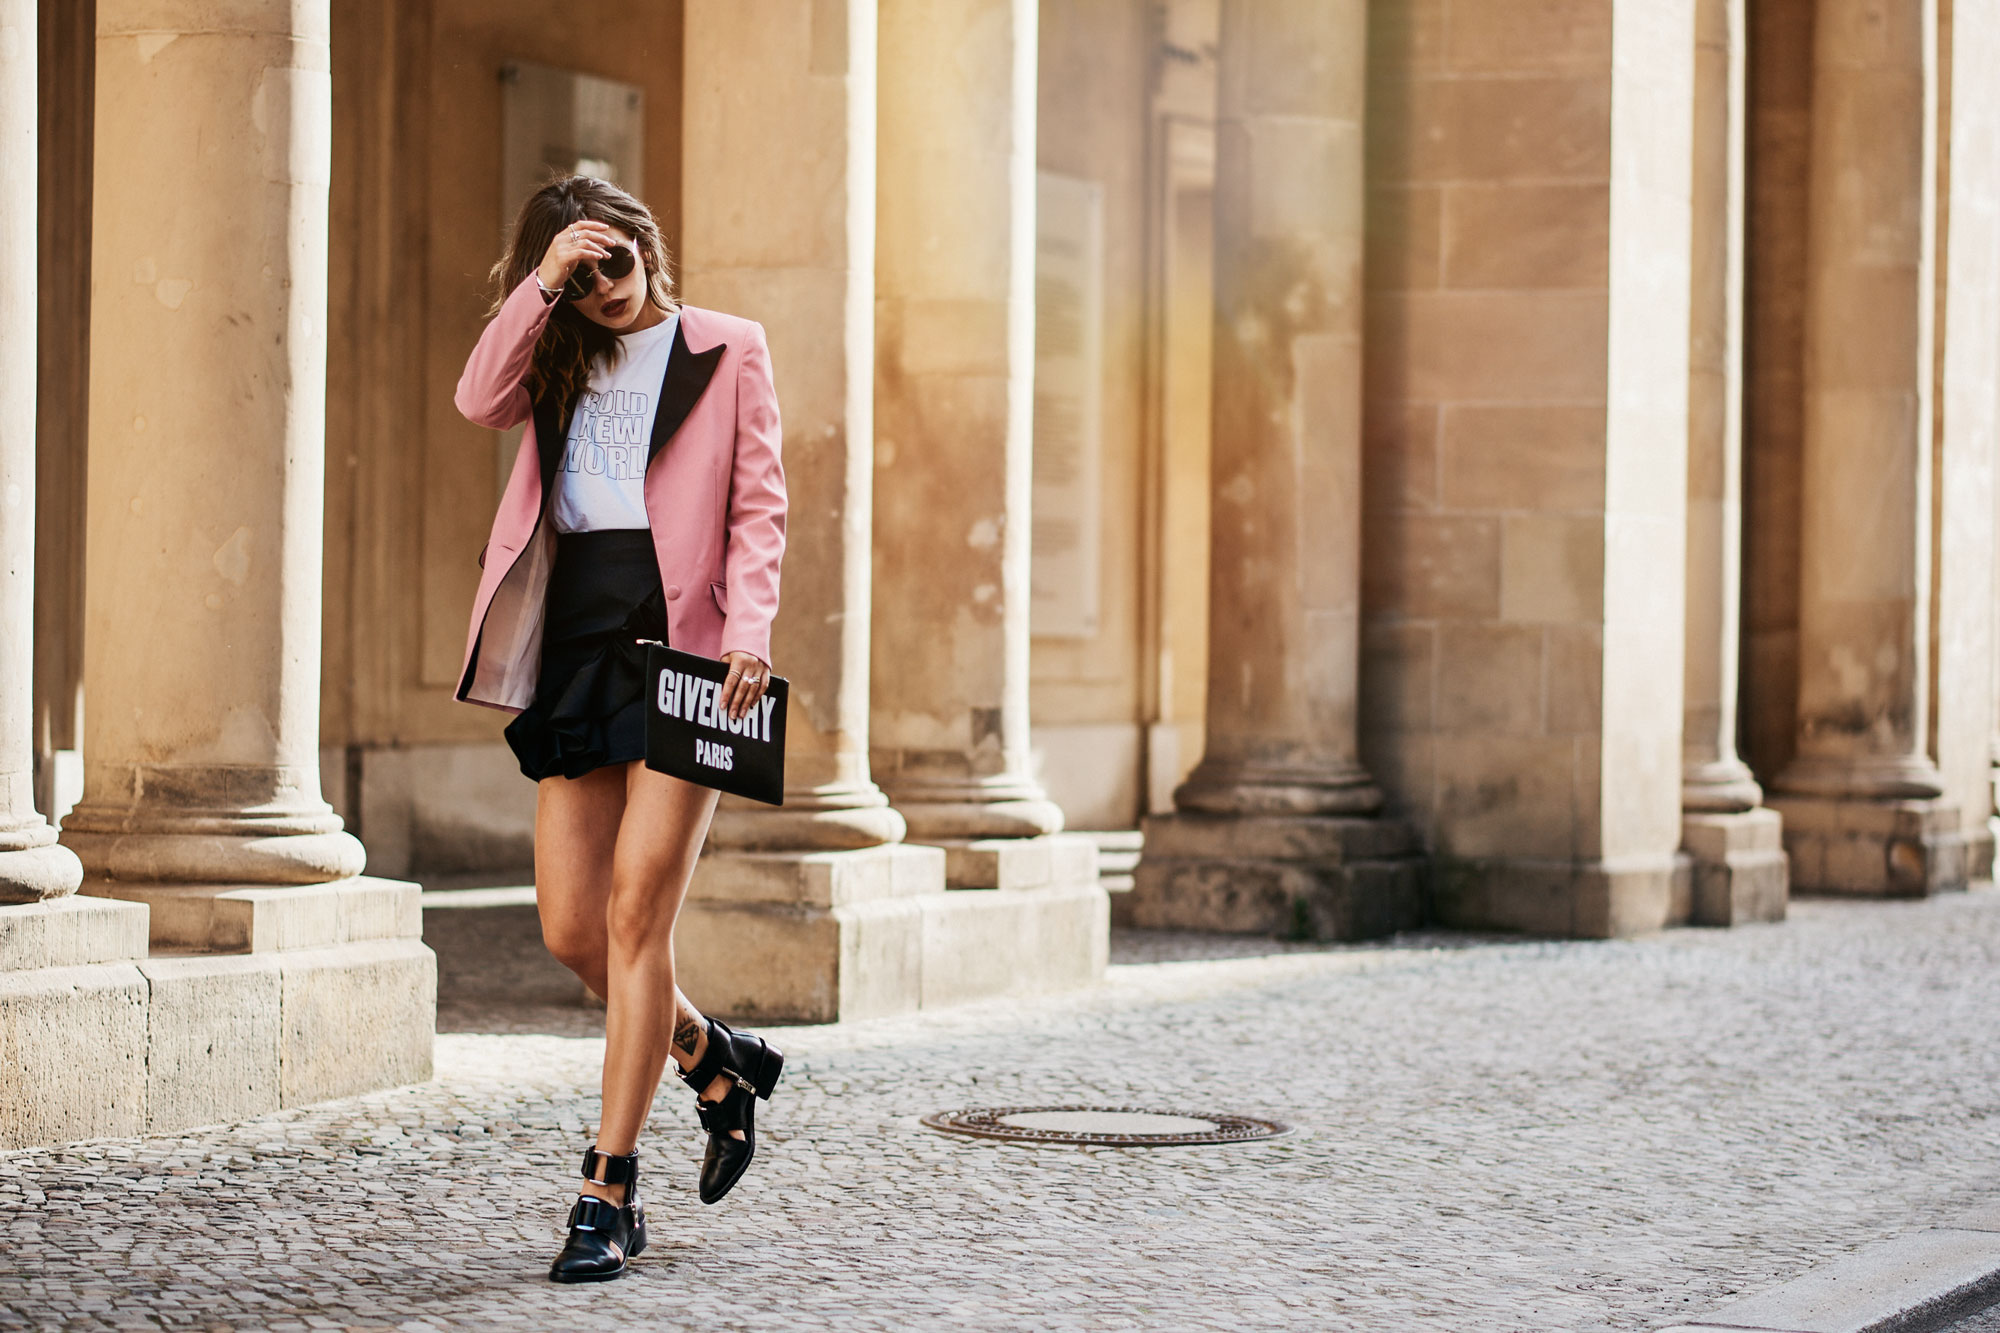 Outfit in Berlin | style: sexy, party, bold, pink, feminine, edgy, cool | pink Blazer from Hebe Studio, clutch from Givenchy, cut out boots from 3.1 Phillip Lim, skirt with ruffles from H&M